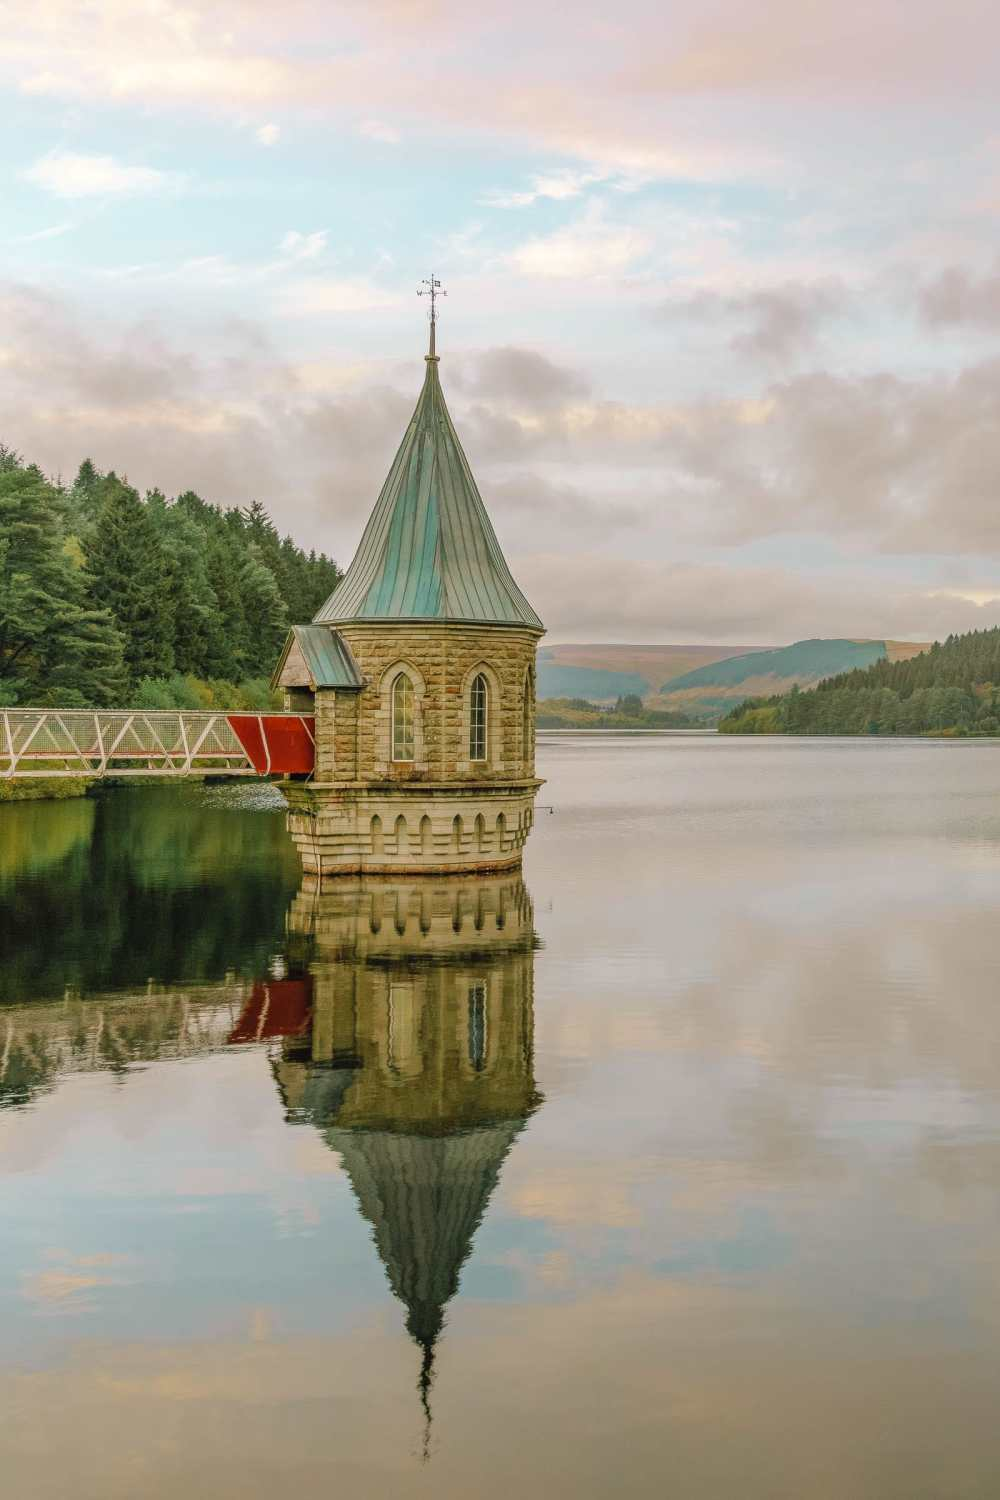 Pontsticill Reservoir in the Brecon Beacons